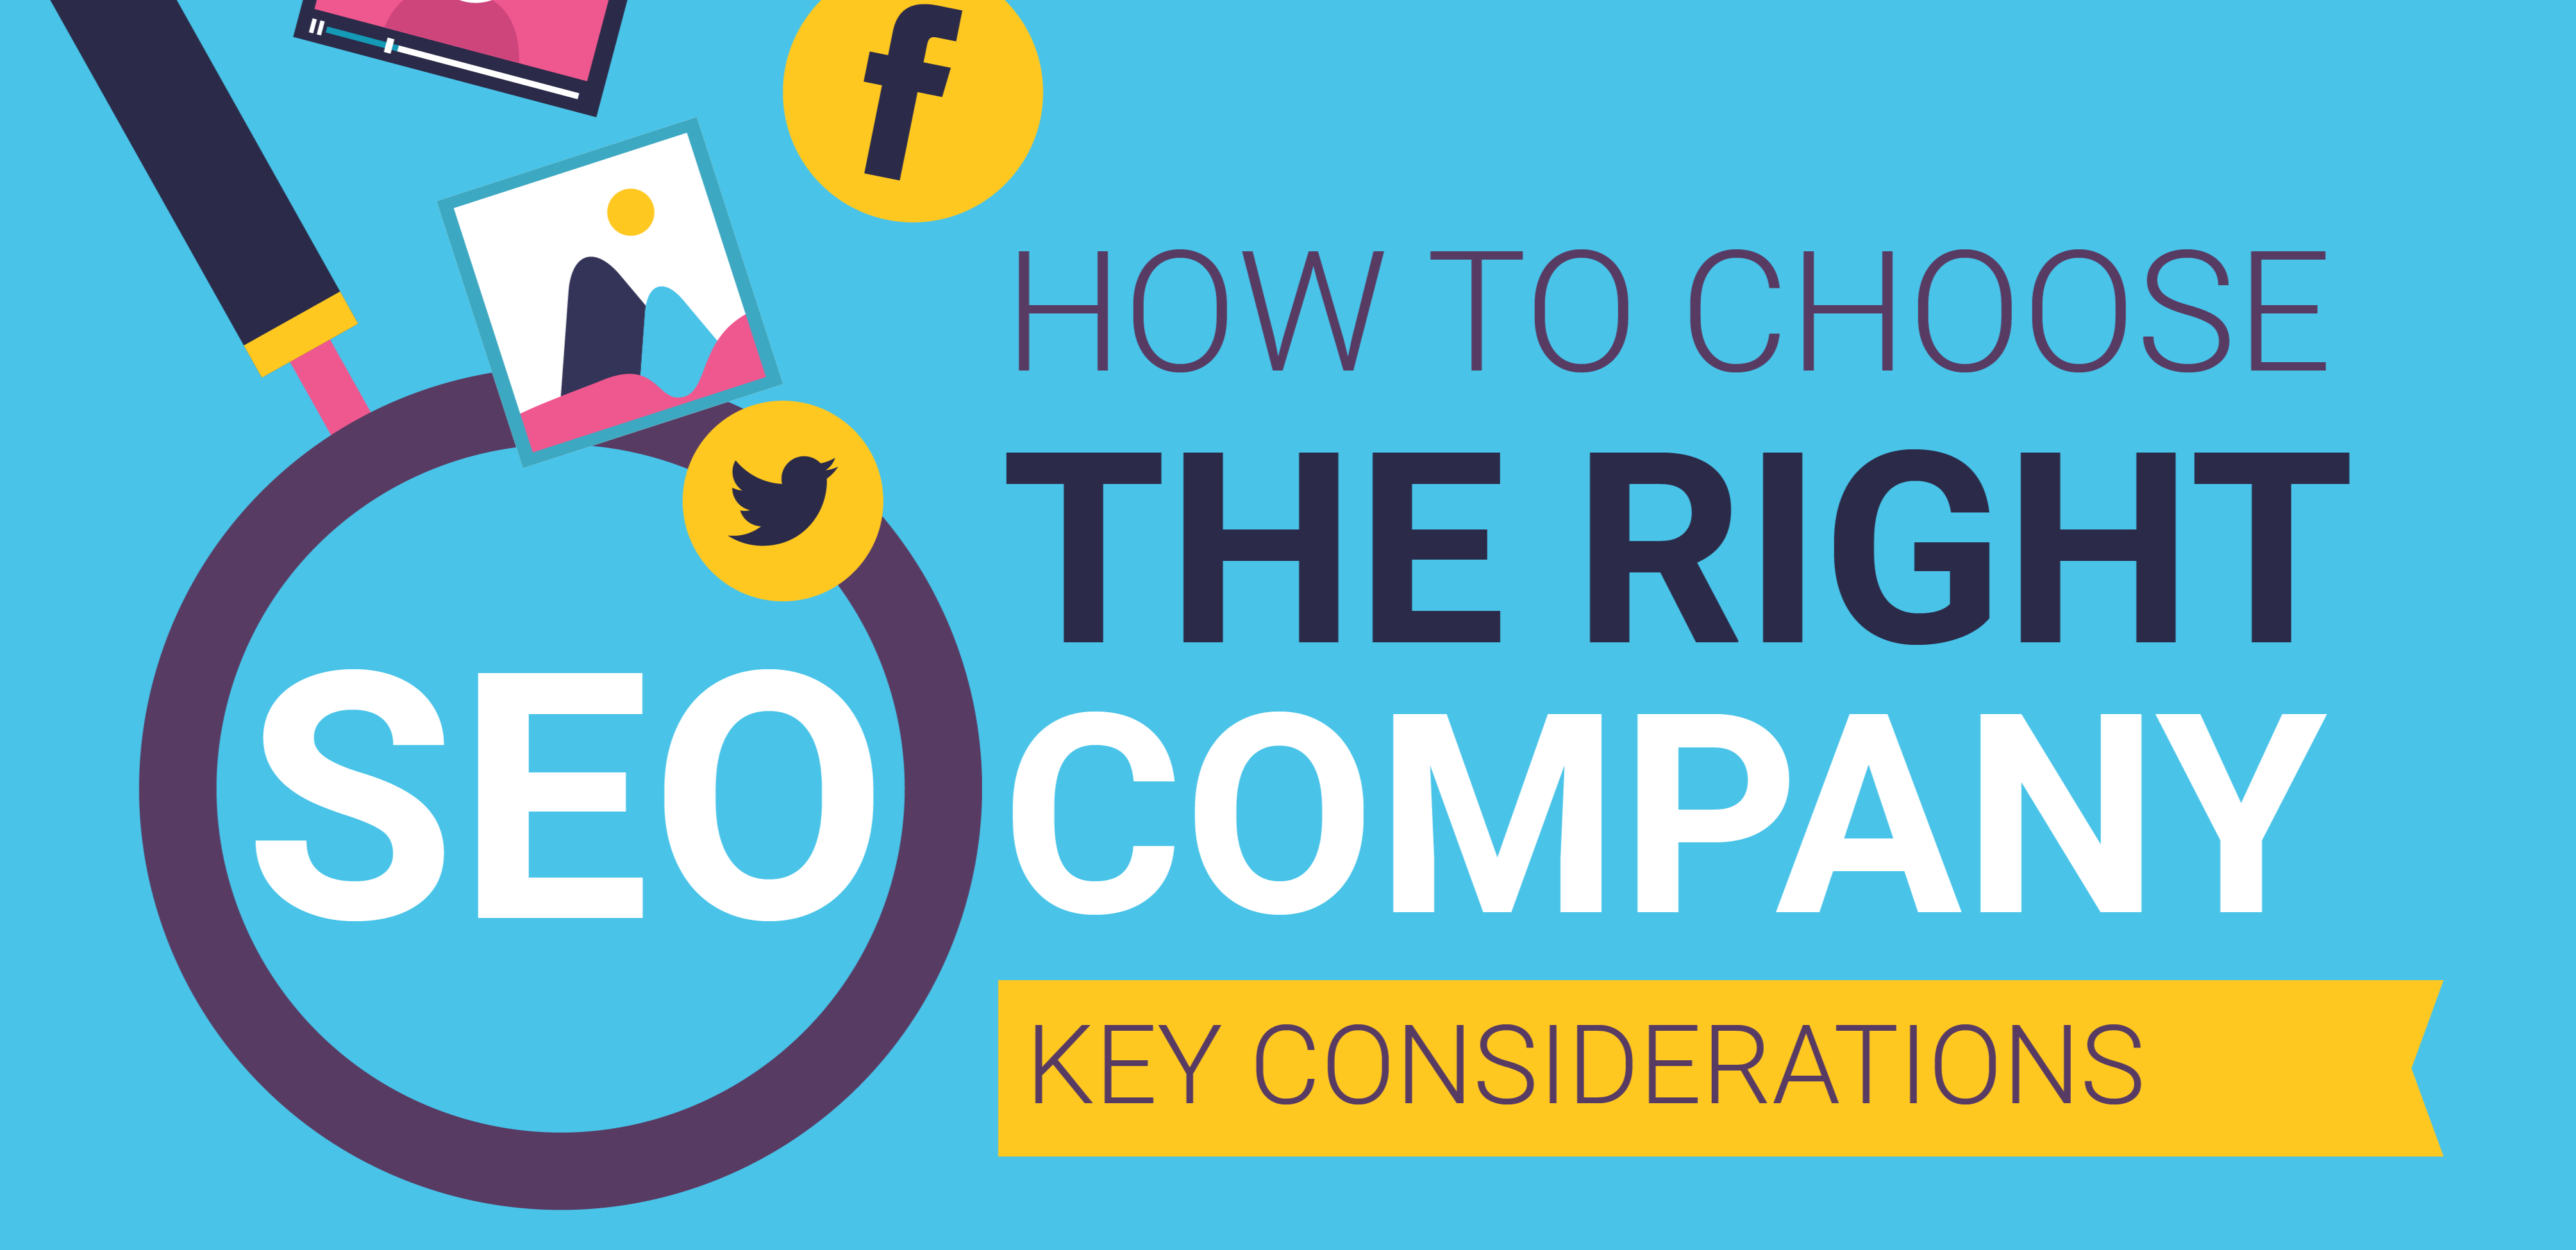 How To Choose The Right SEO Company To Take Your Business Forward